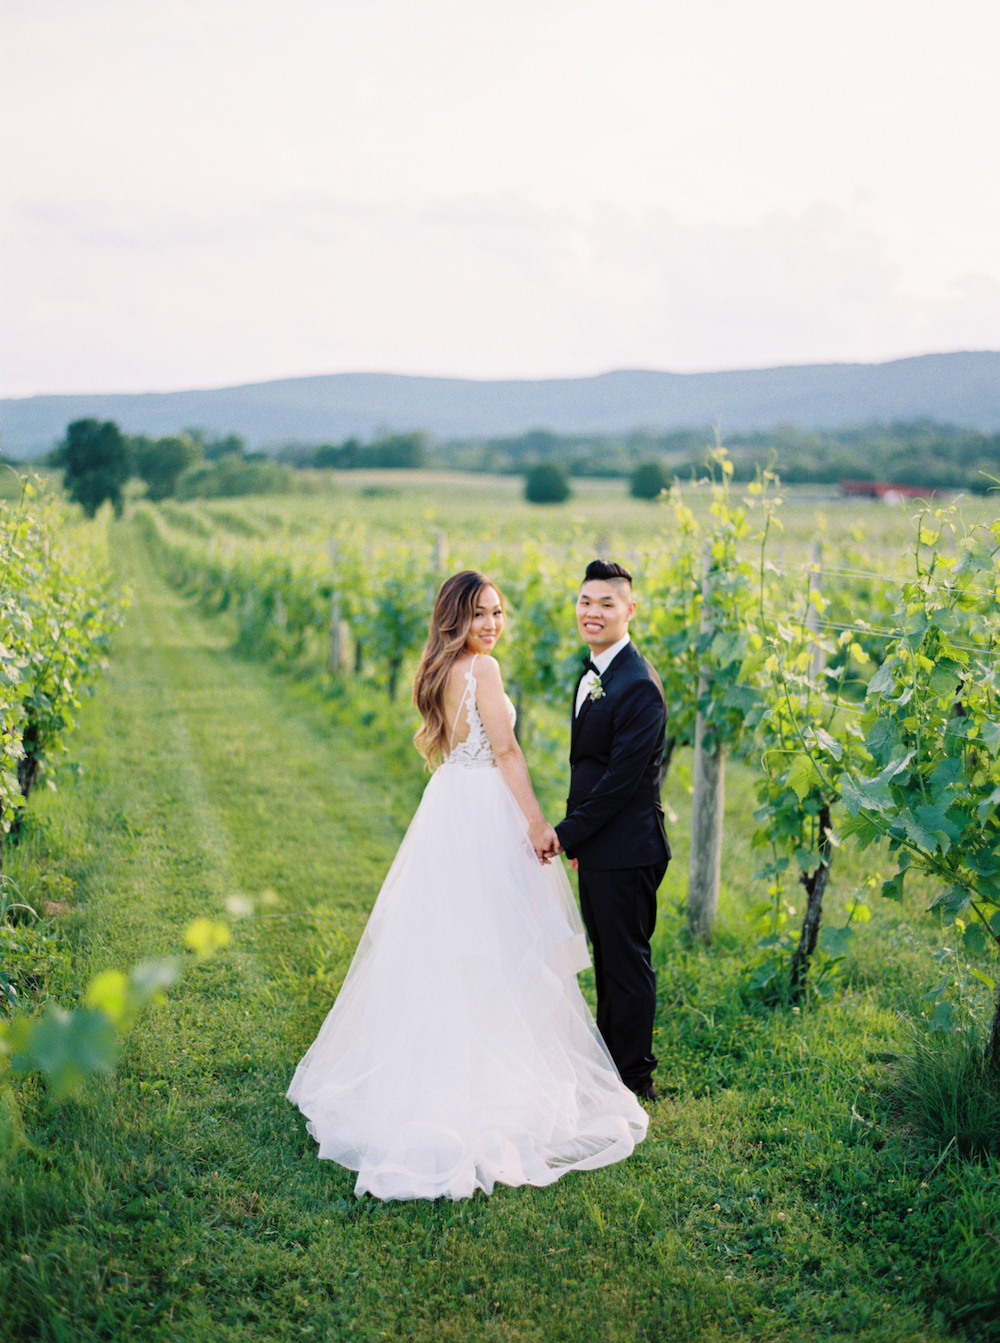 Organic Romantic Breaux Vineyard DC Wedding Planner A Griffin Events 538.jpg